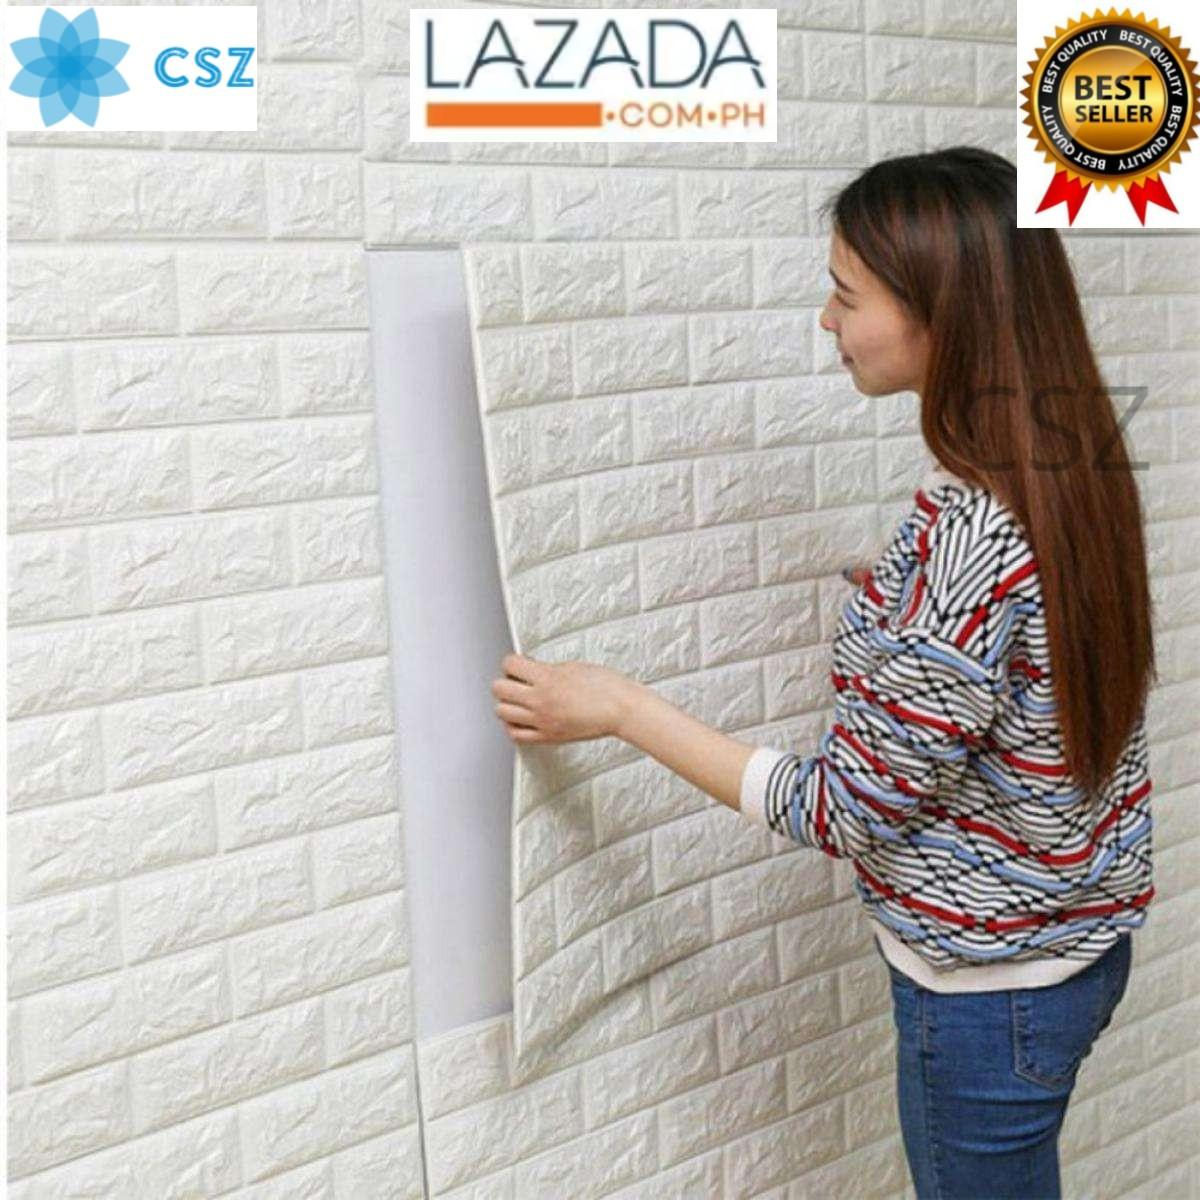 White Brick 1 Piece Wall Sticker Measures 70cm x 77cm 3D Effect Stone Pattern Soft Adhesive